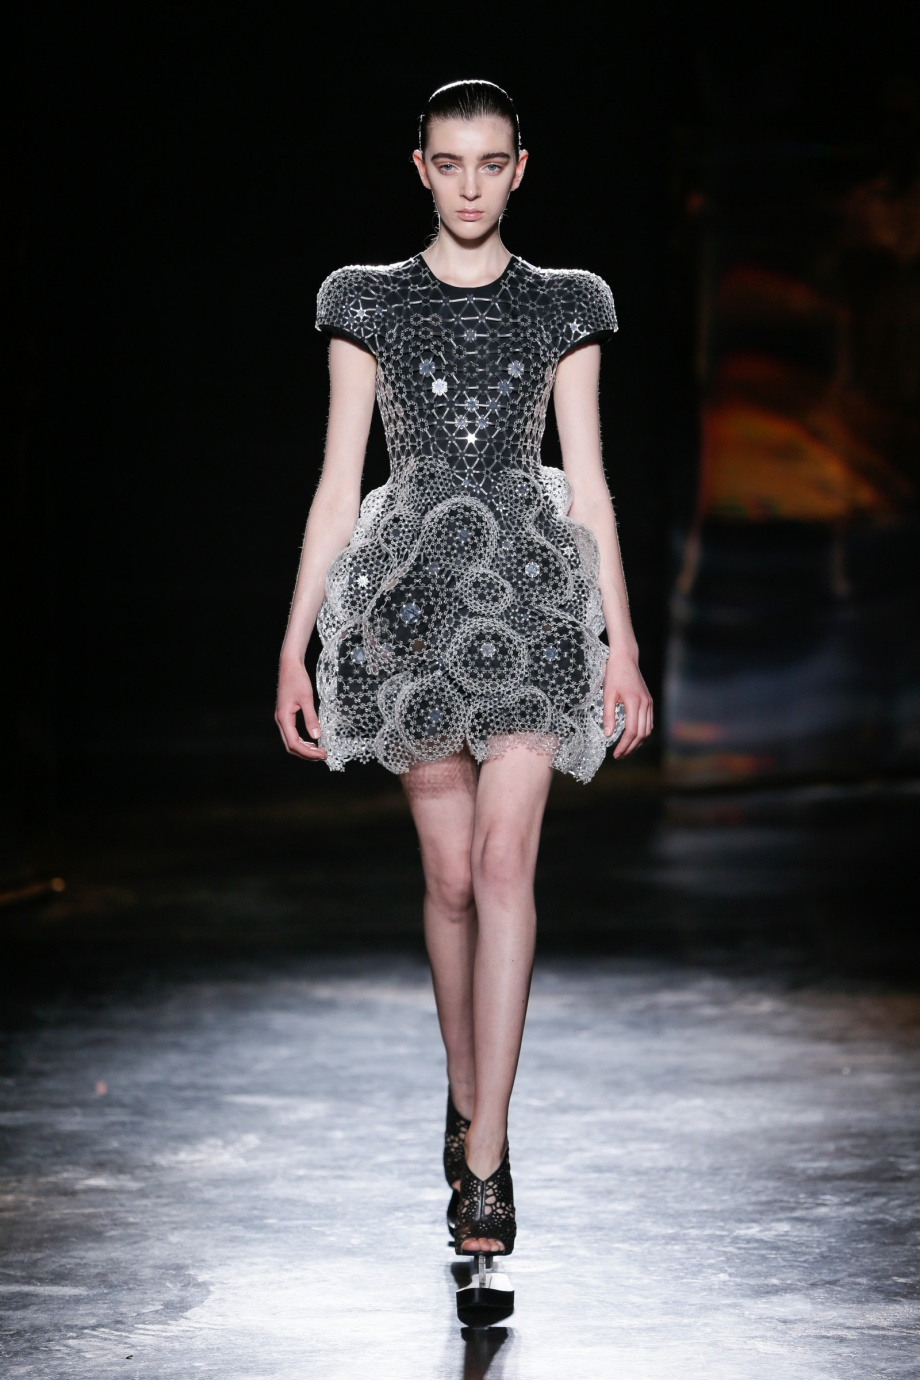 Iris van Herpen laser cut dress